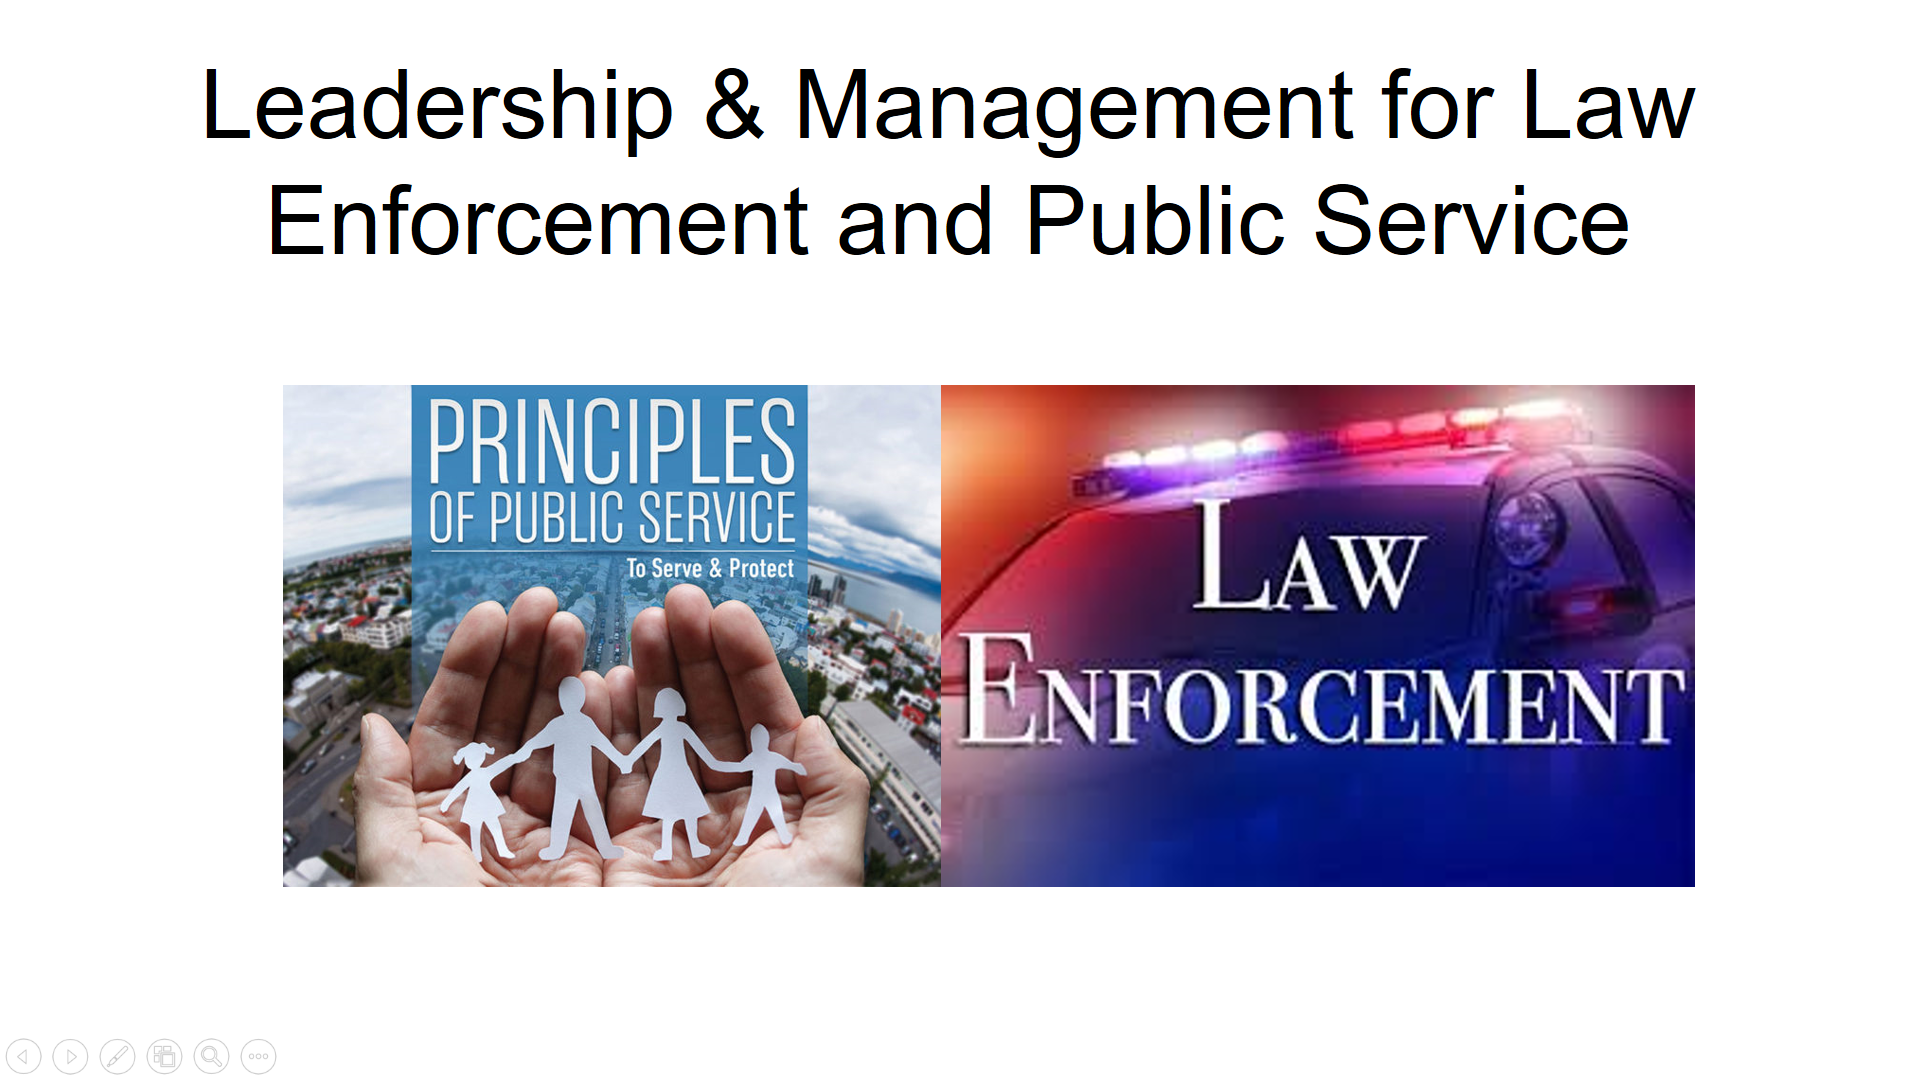 Law Enforcement & Public Service Management Training